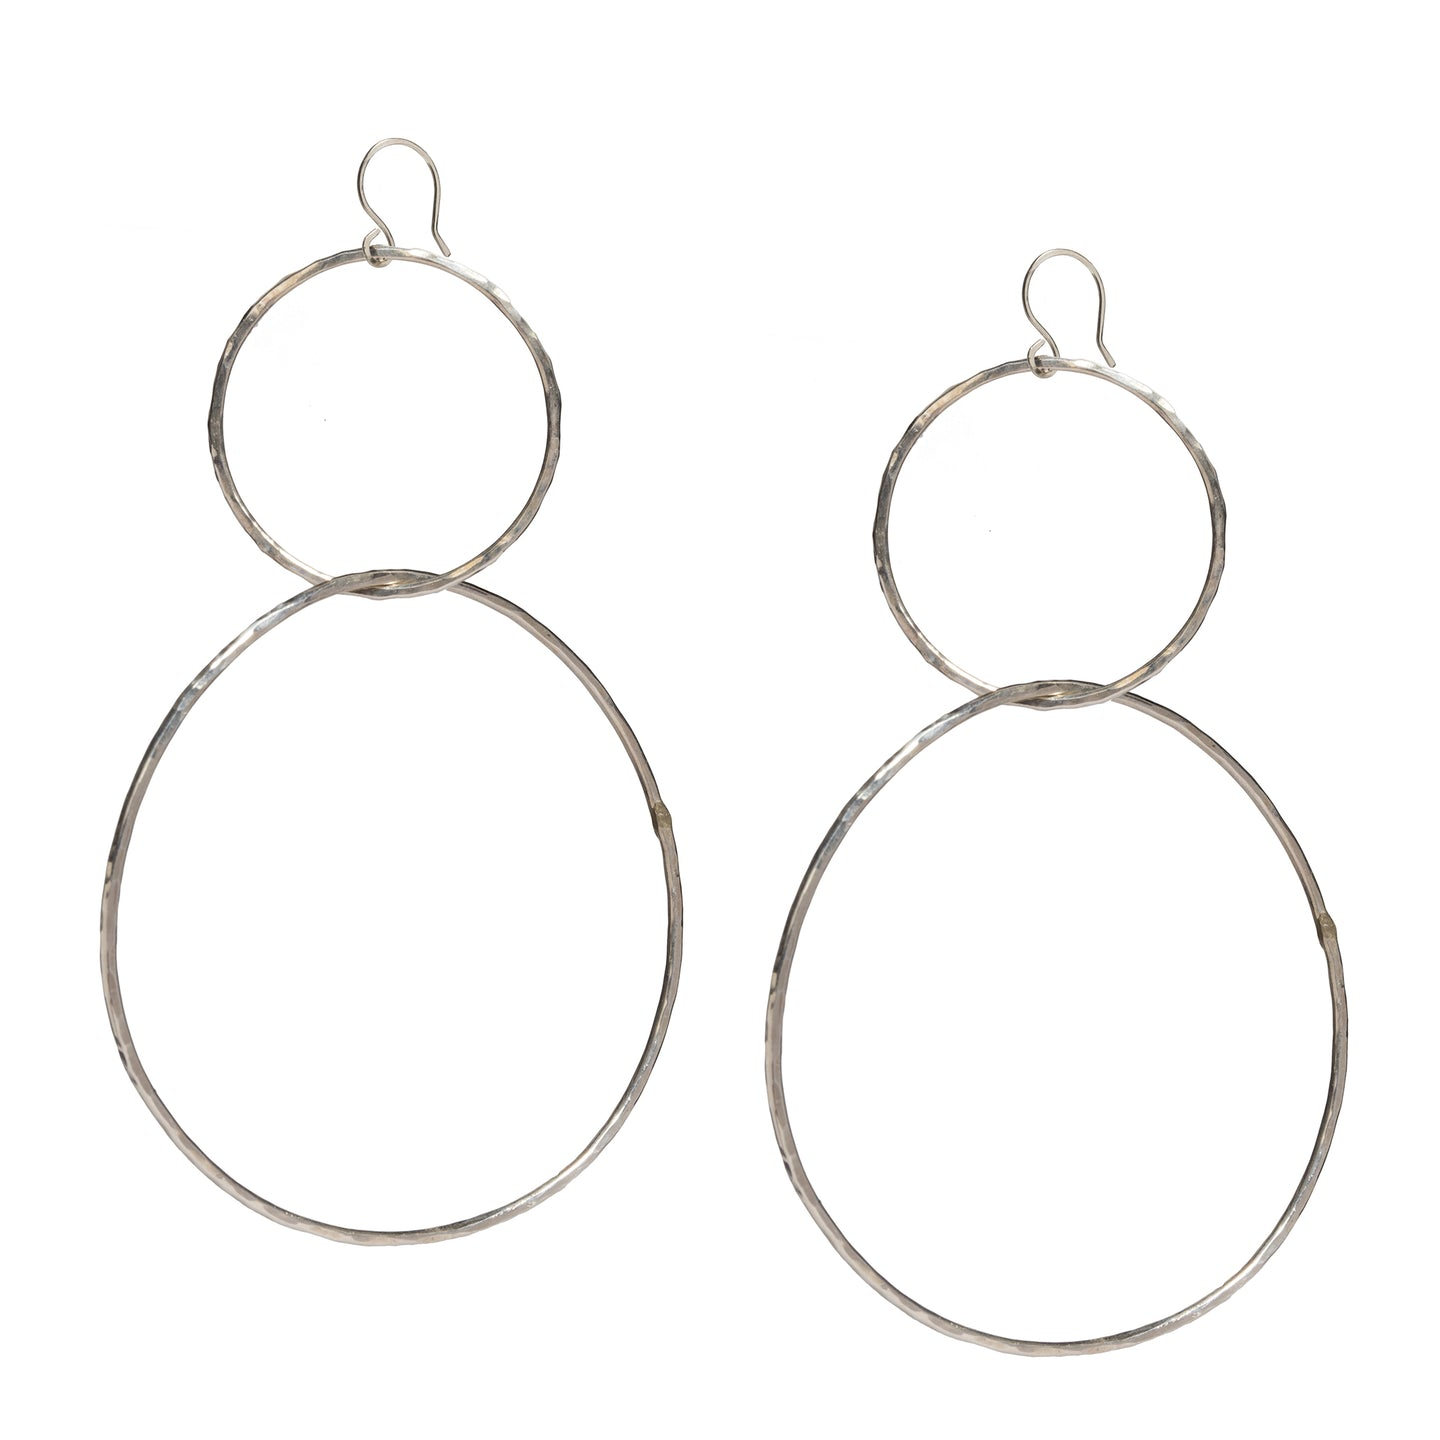 Double Linked Hoops Earrings